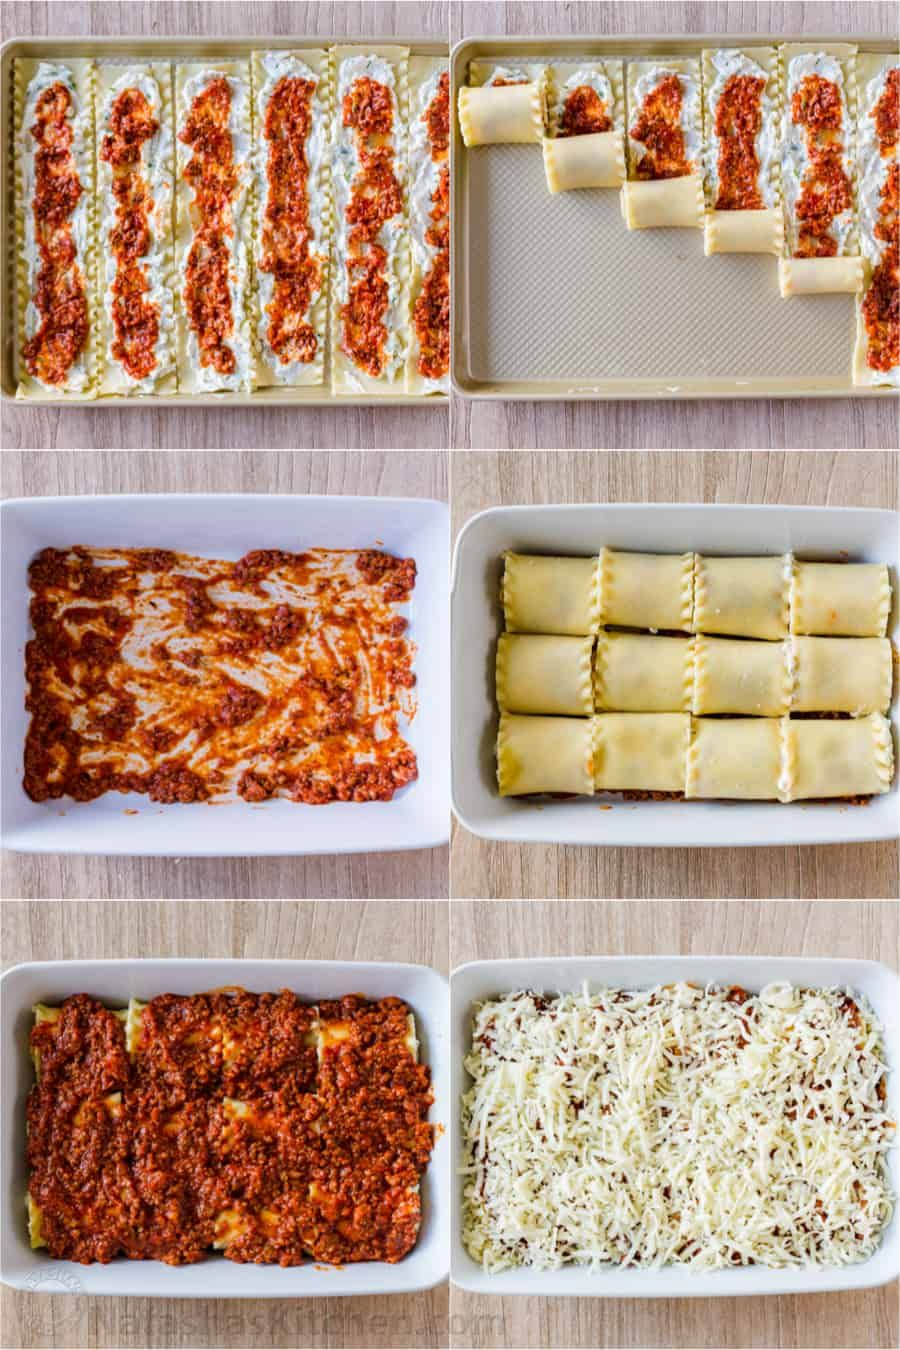 Lasagna Roll Ups Recipe (VIDEO) - NatashasKitchen.com